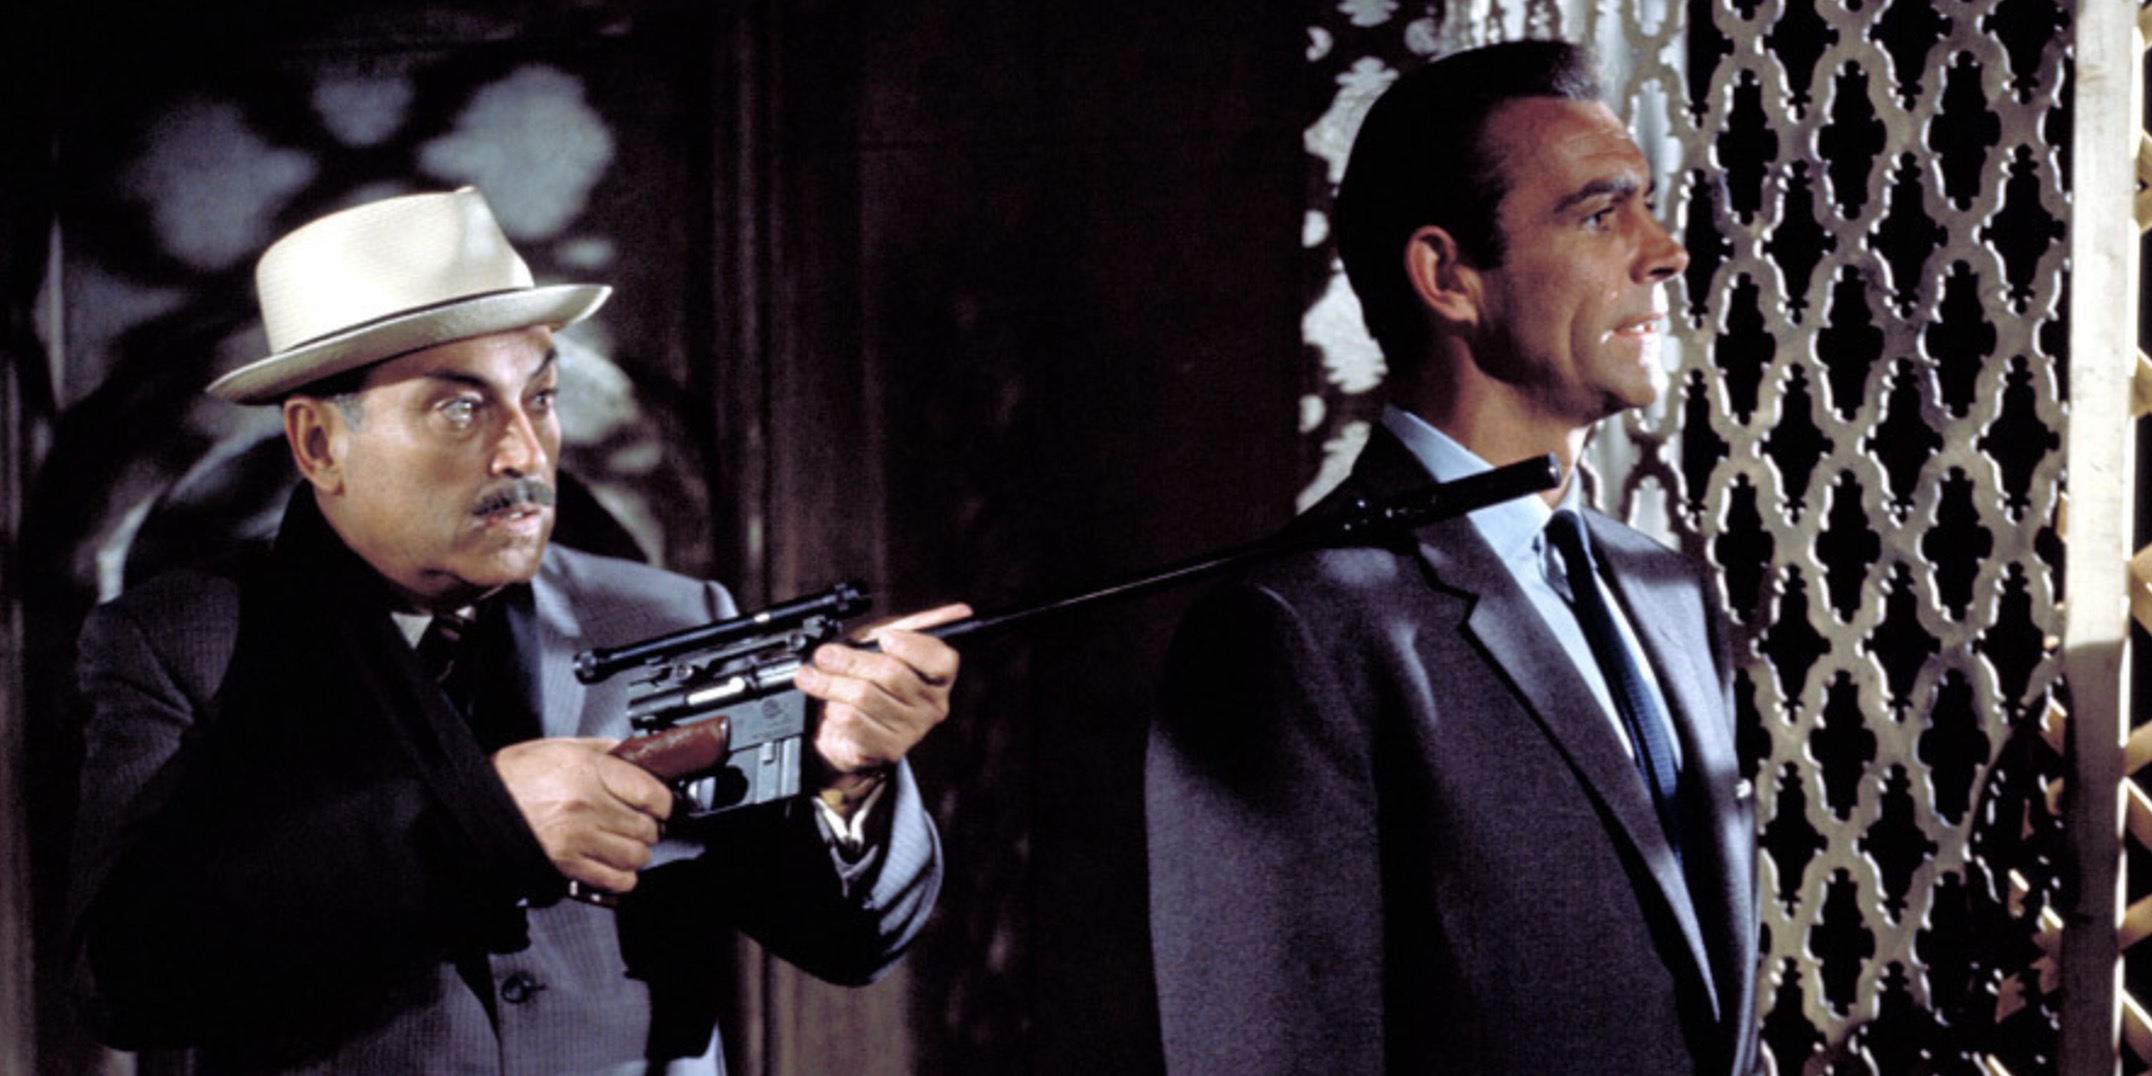 60s movie, movies, From Russia with Love